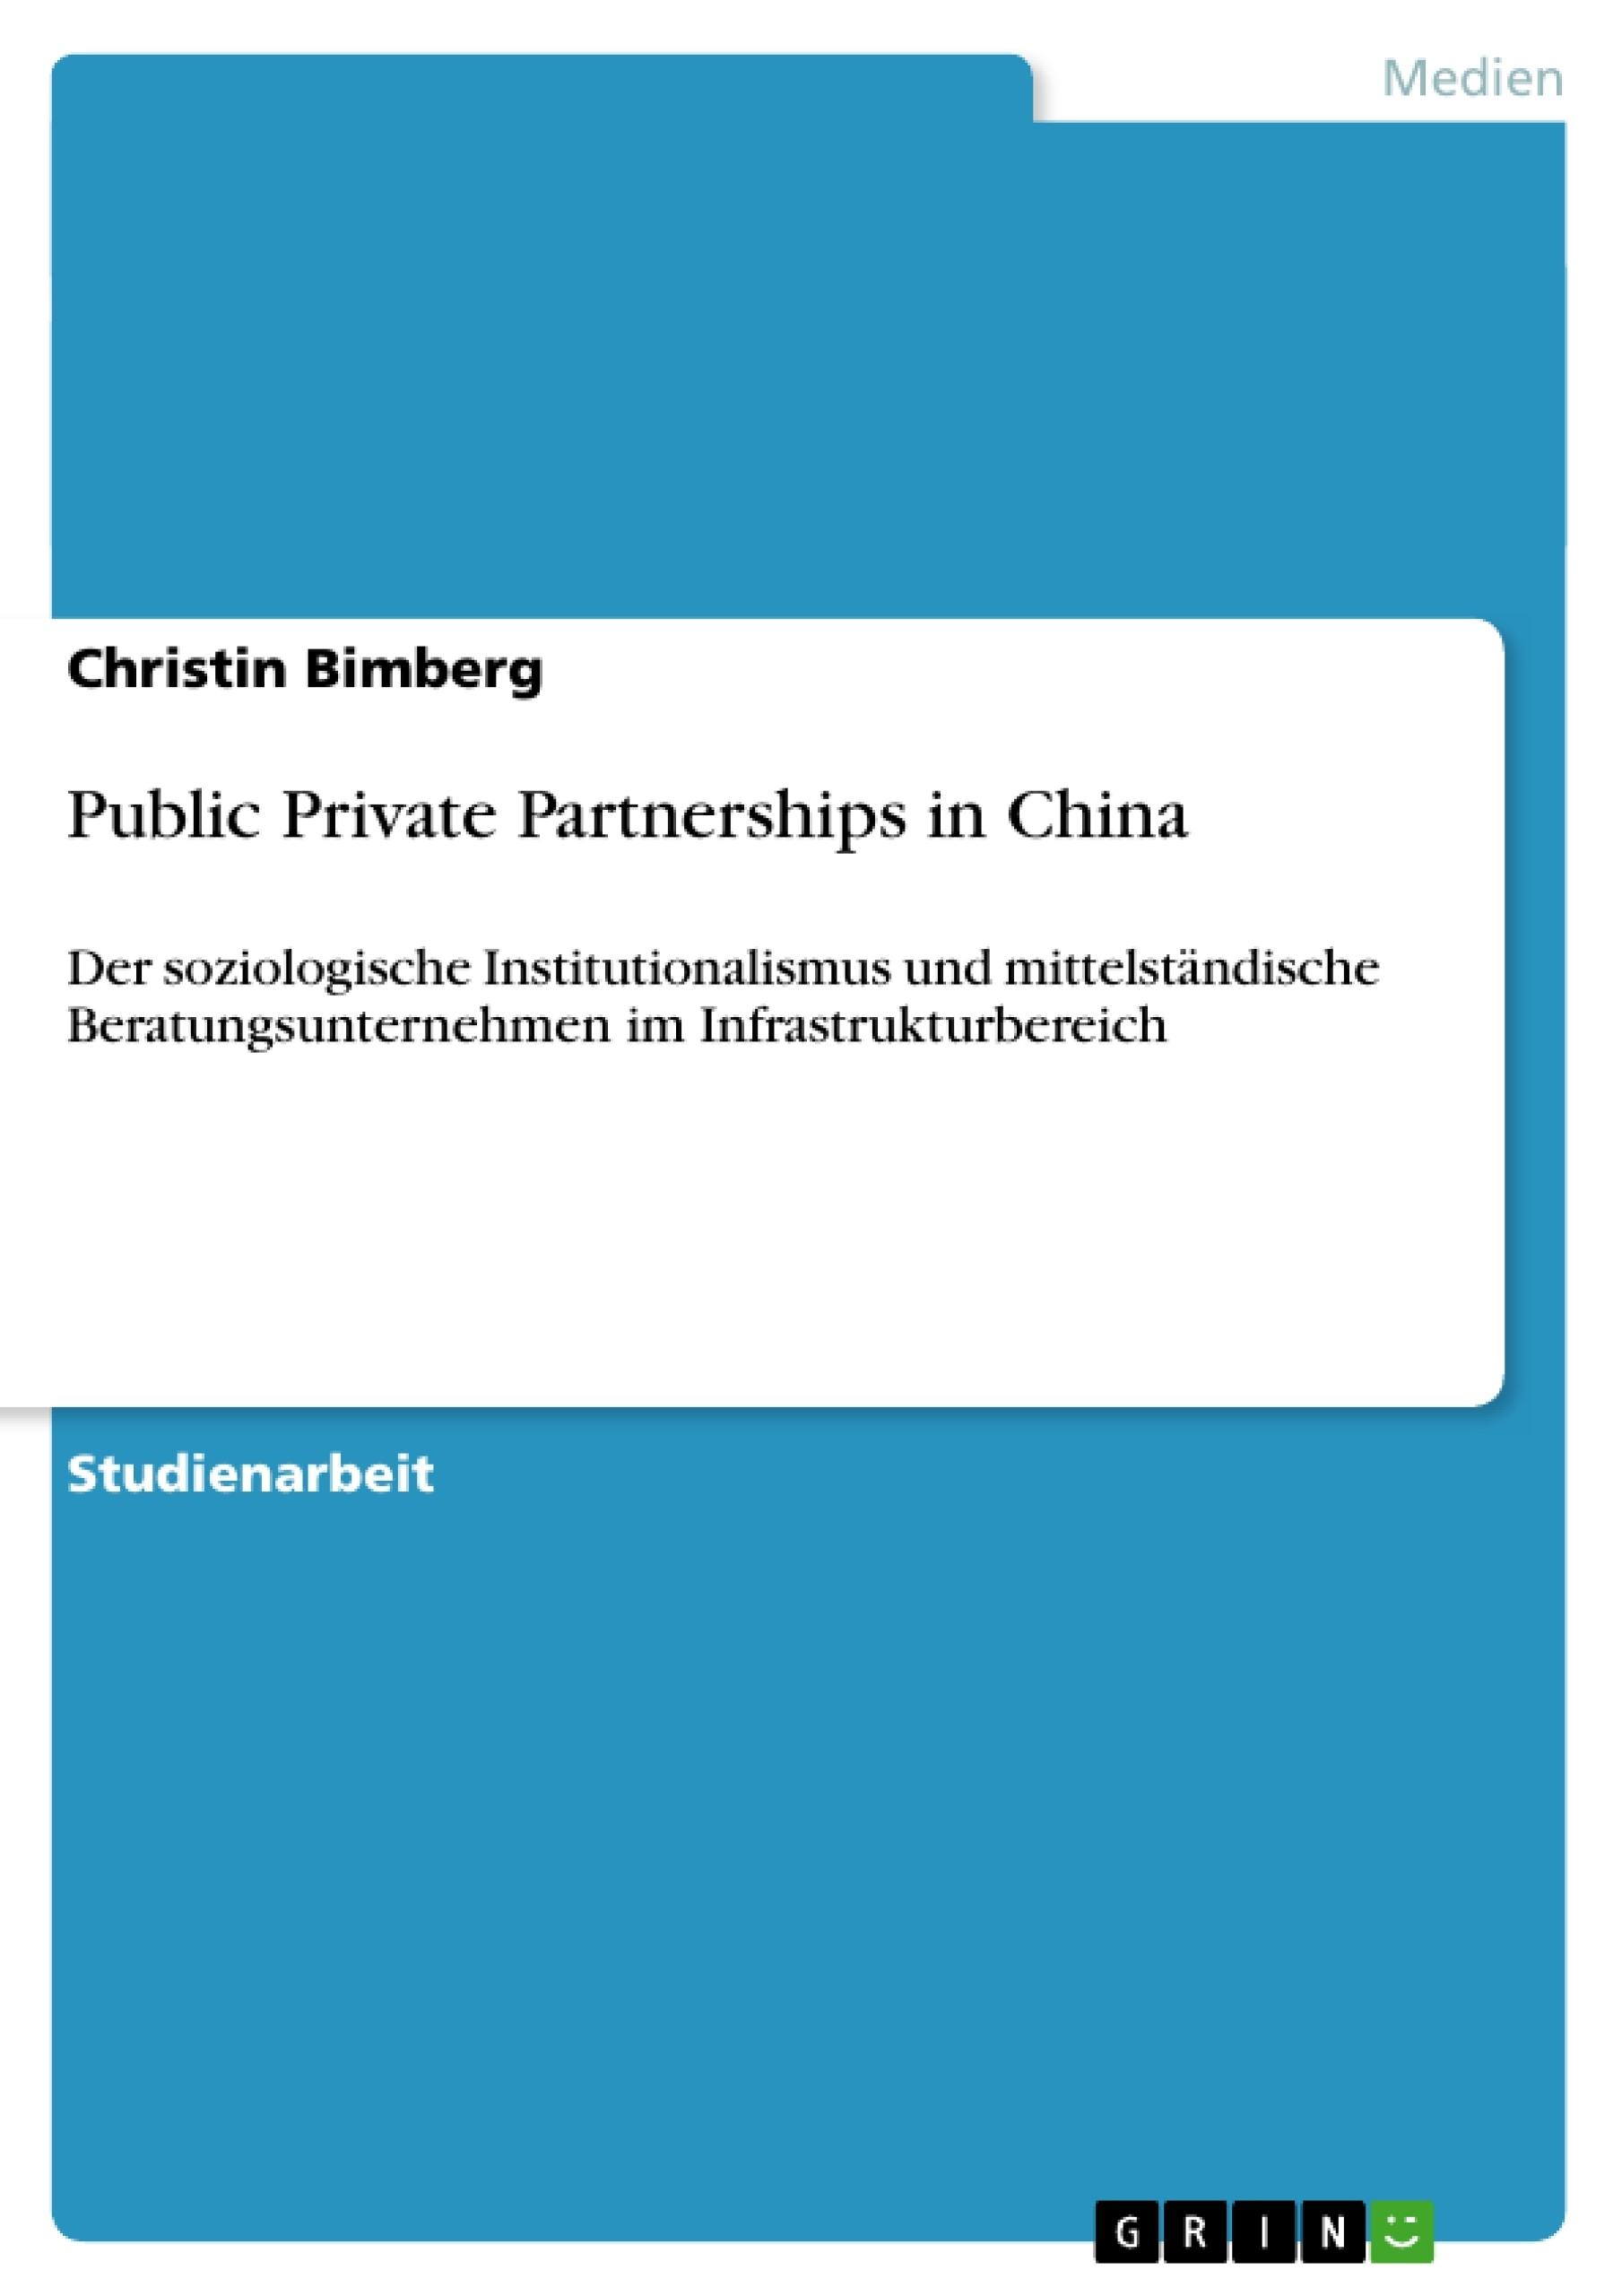 Titel: Public Private Partnerships in China